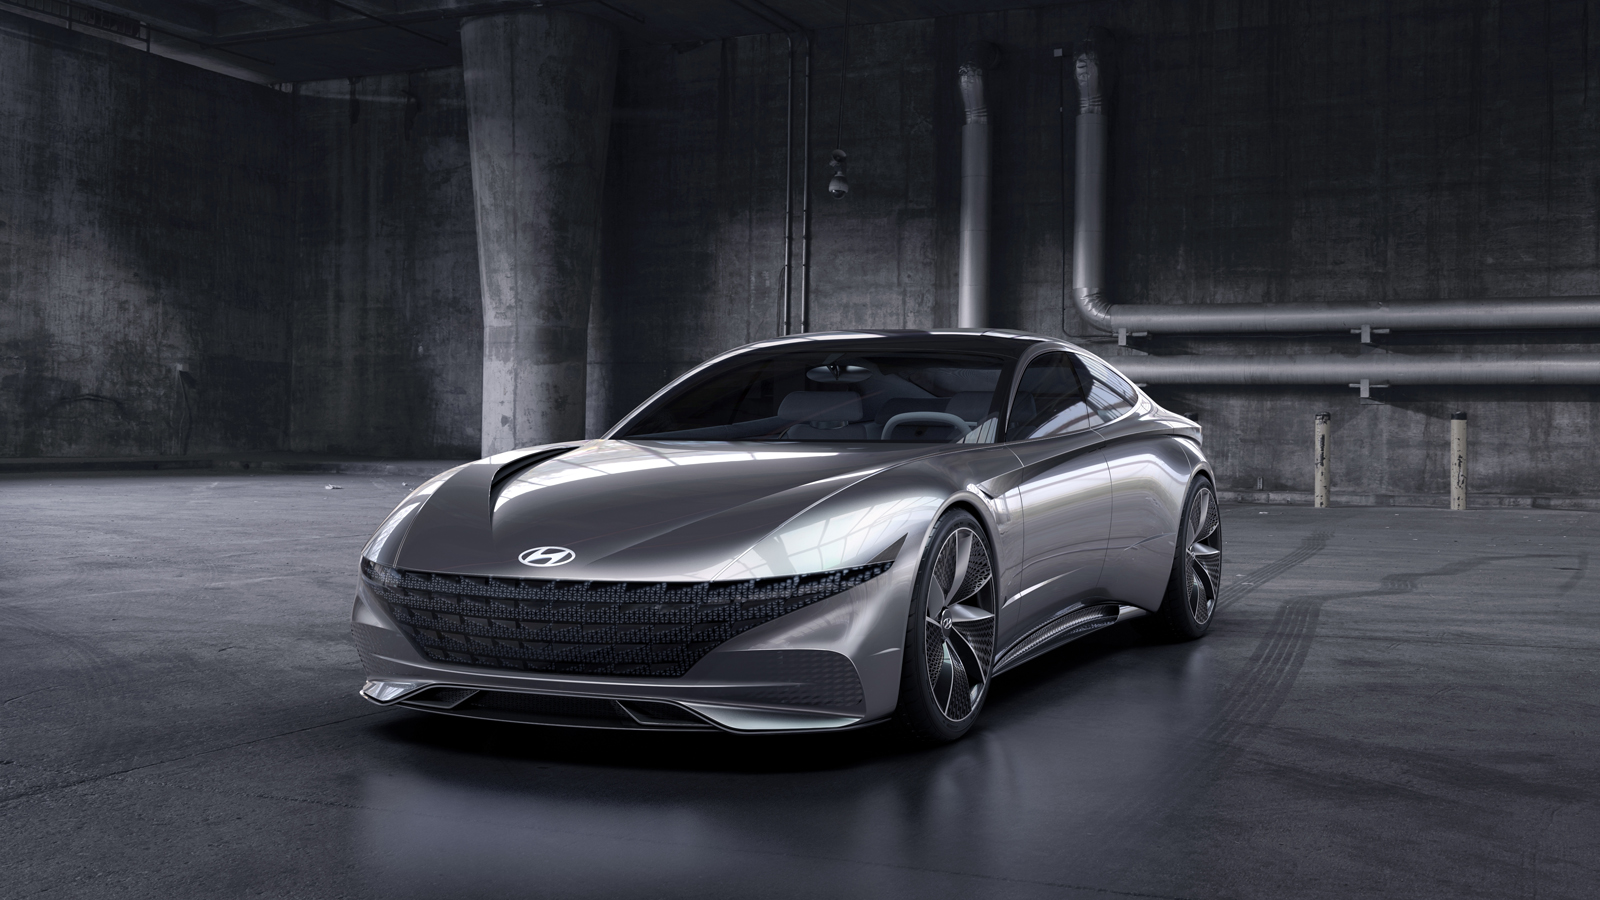 Hyundai Le Fil Rouge Concept Signals Brand's Future Styling